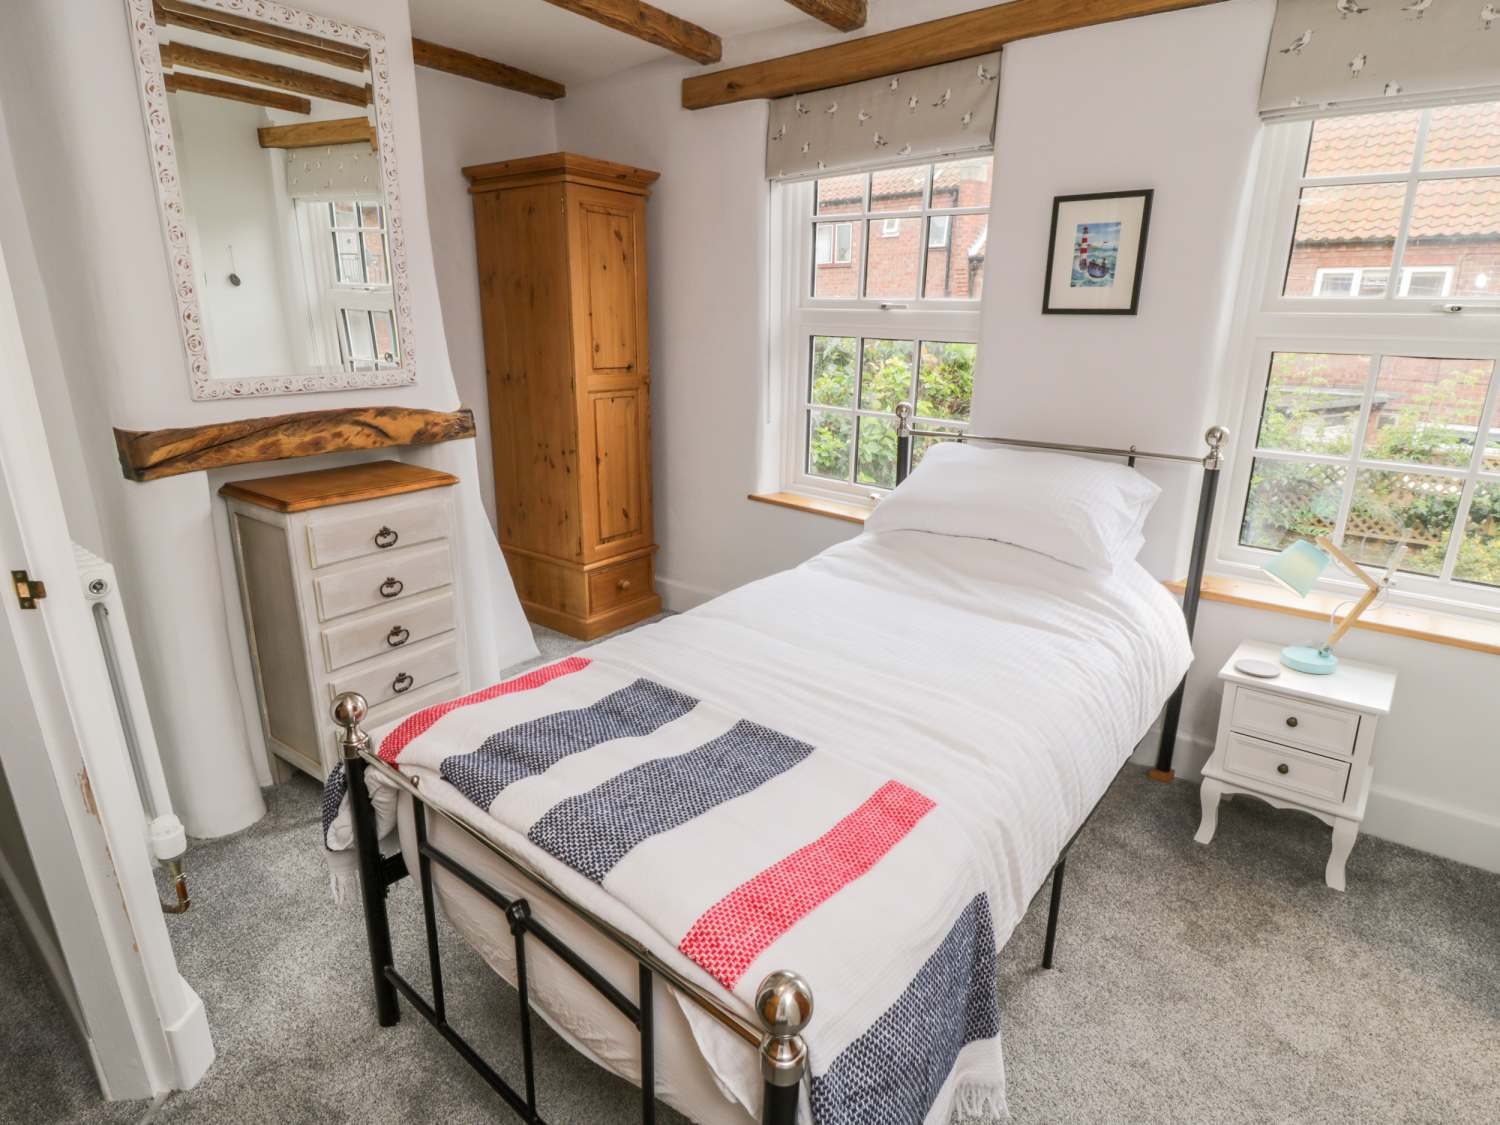 Hagstone Cottage Whitby Beach Stays Think dramatic cliffs, cosy restaurants & historic scenery. hagstone cottage whitby beach stays